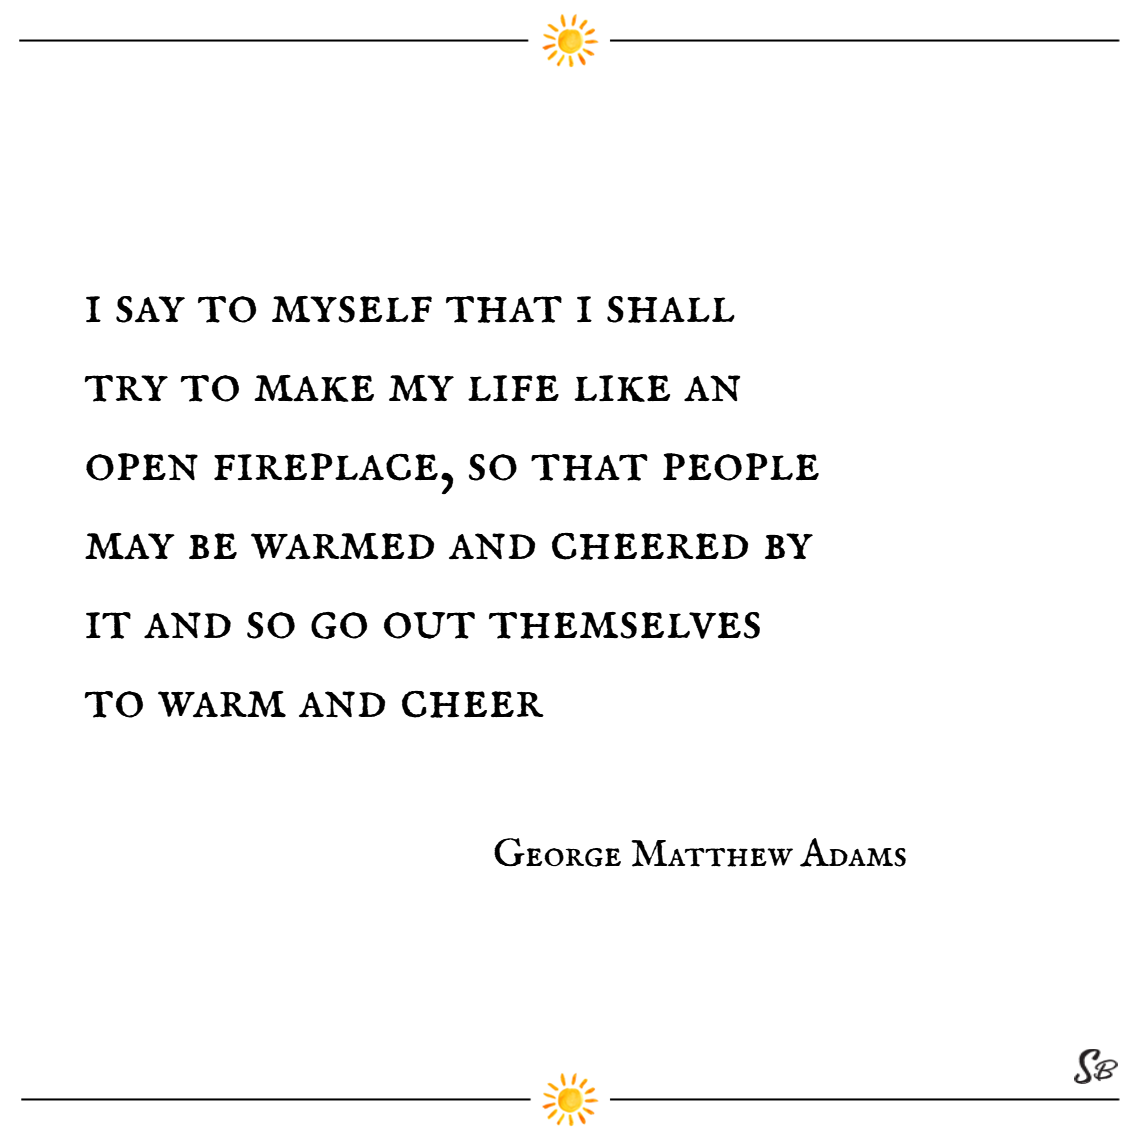 I say to myself that i shall try to make my life like an open fireplace, so that people may be warmed and cheered by it and so go out themselves to warm and cheer. – george matthew adams